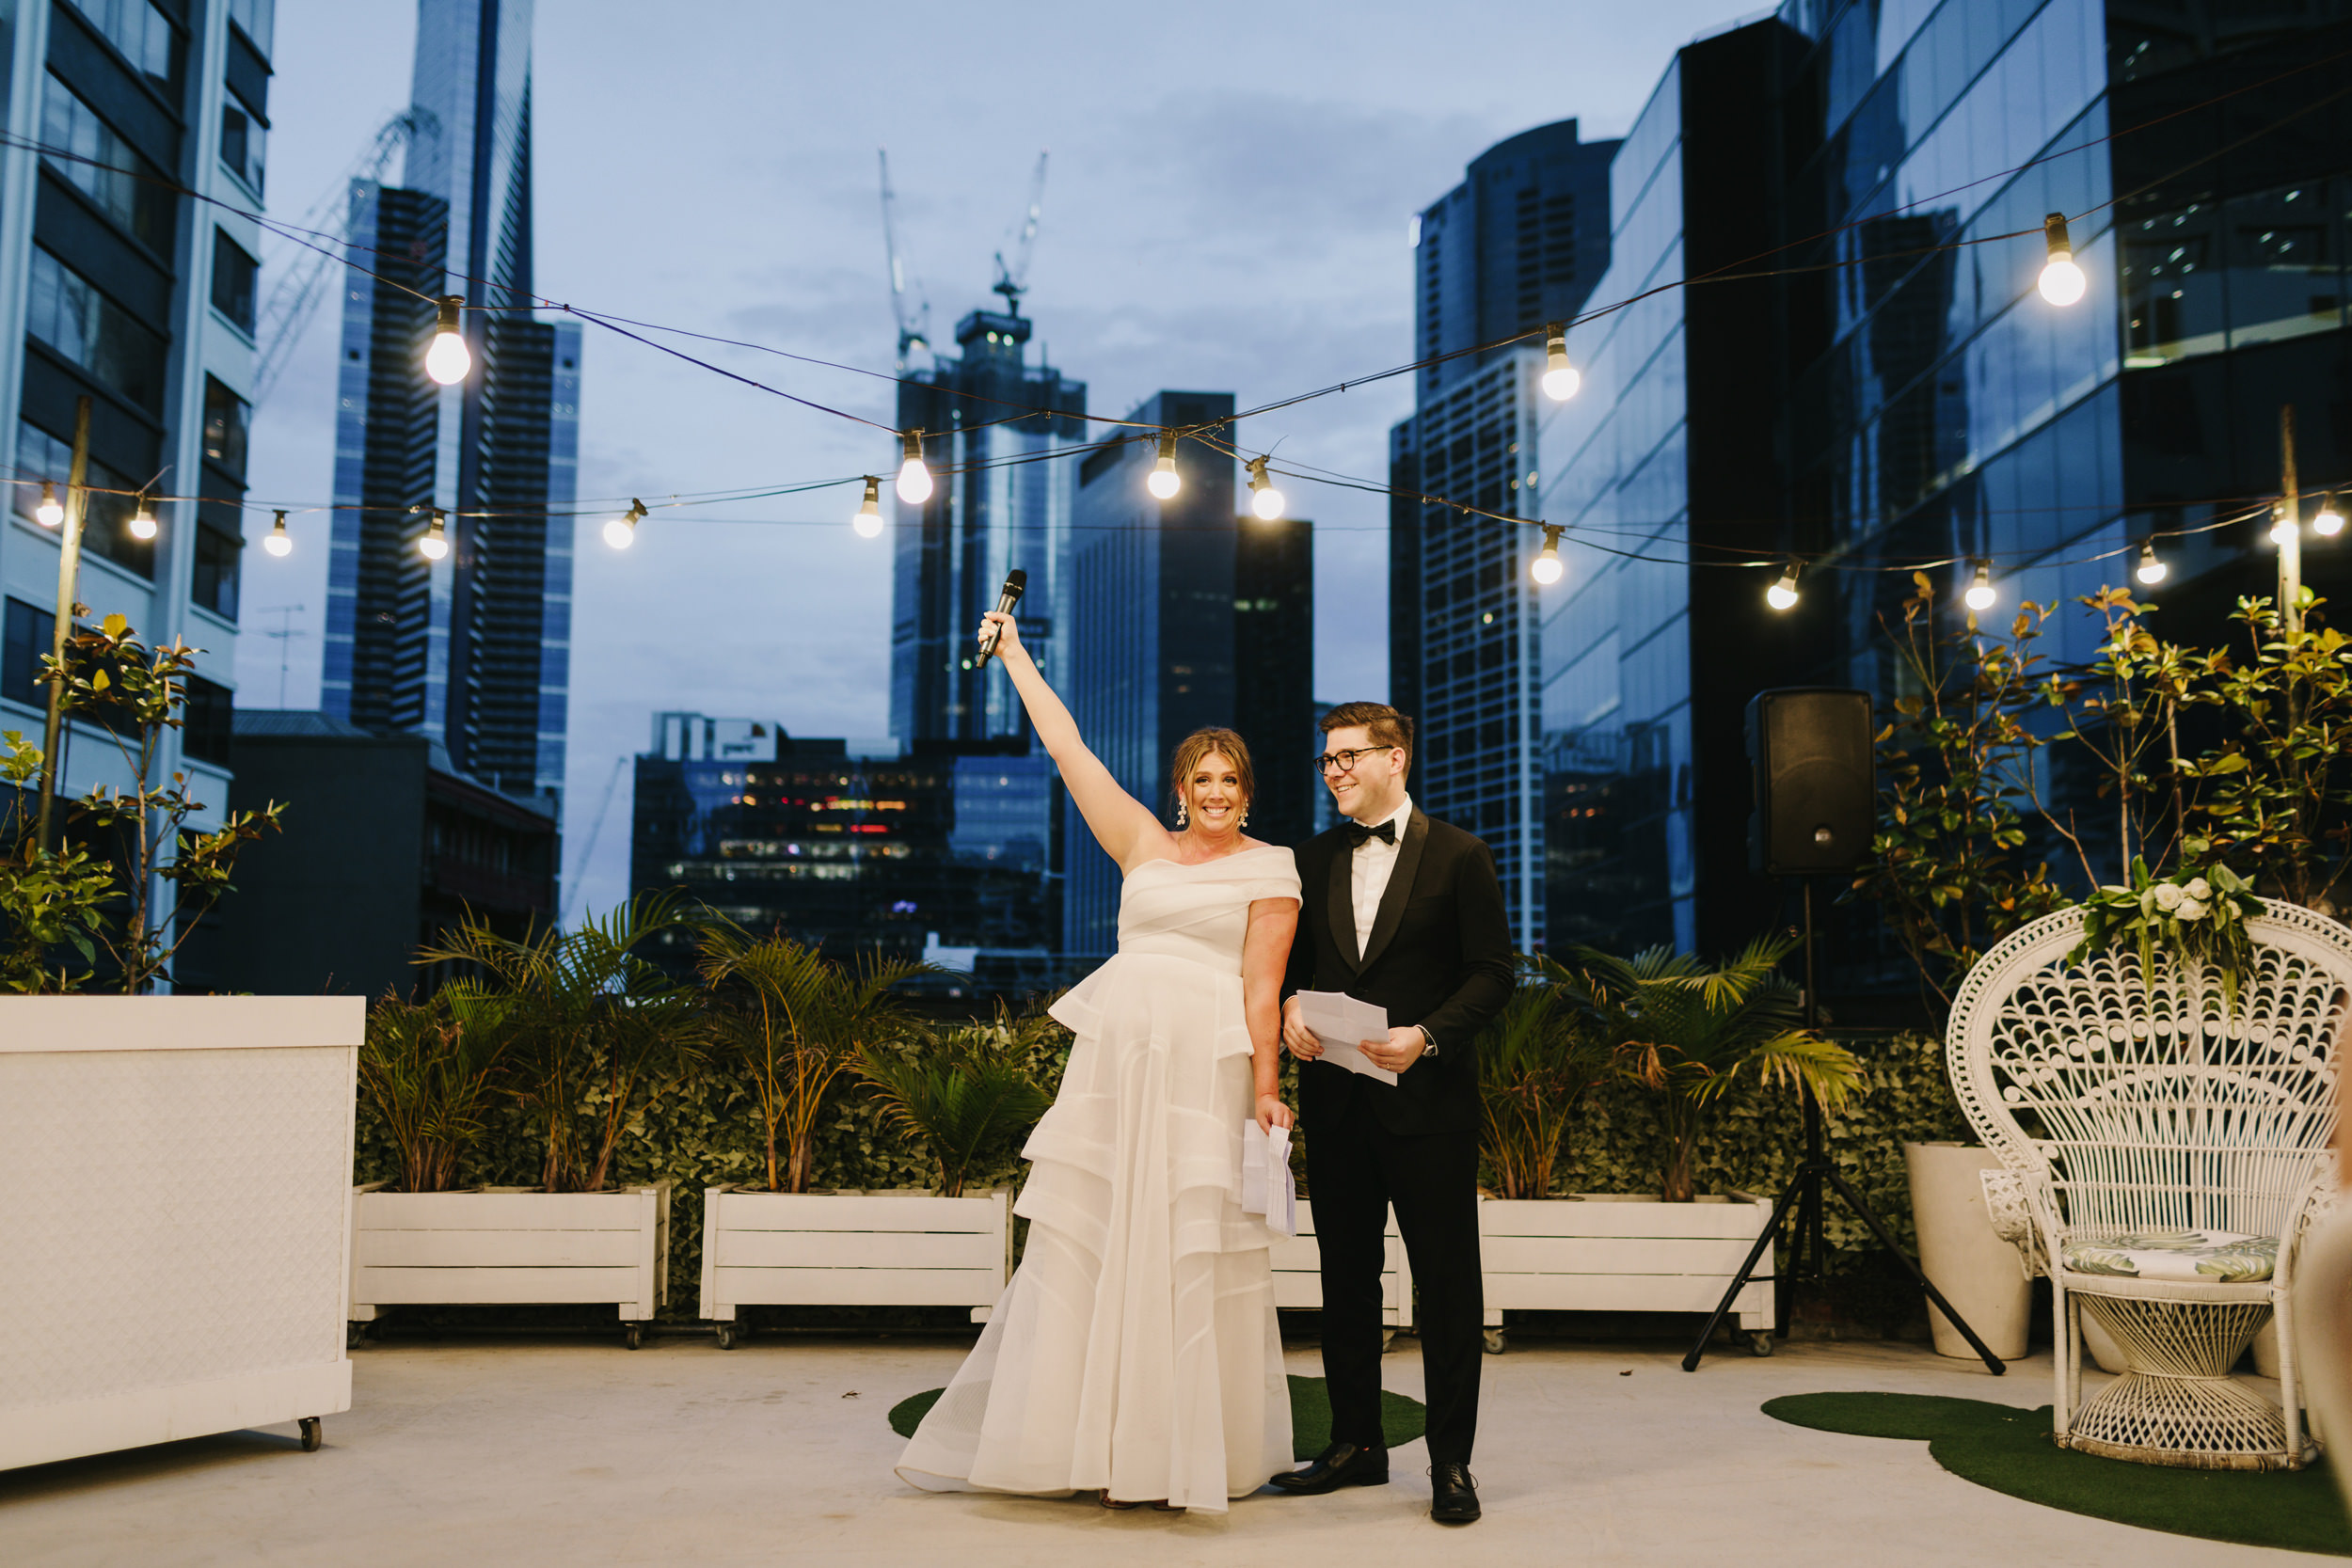 Melbourne_City_Rooftop_Wedding_Tyson_Brigette128.JPG